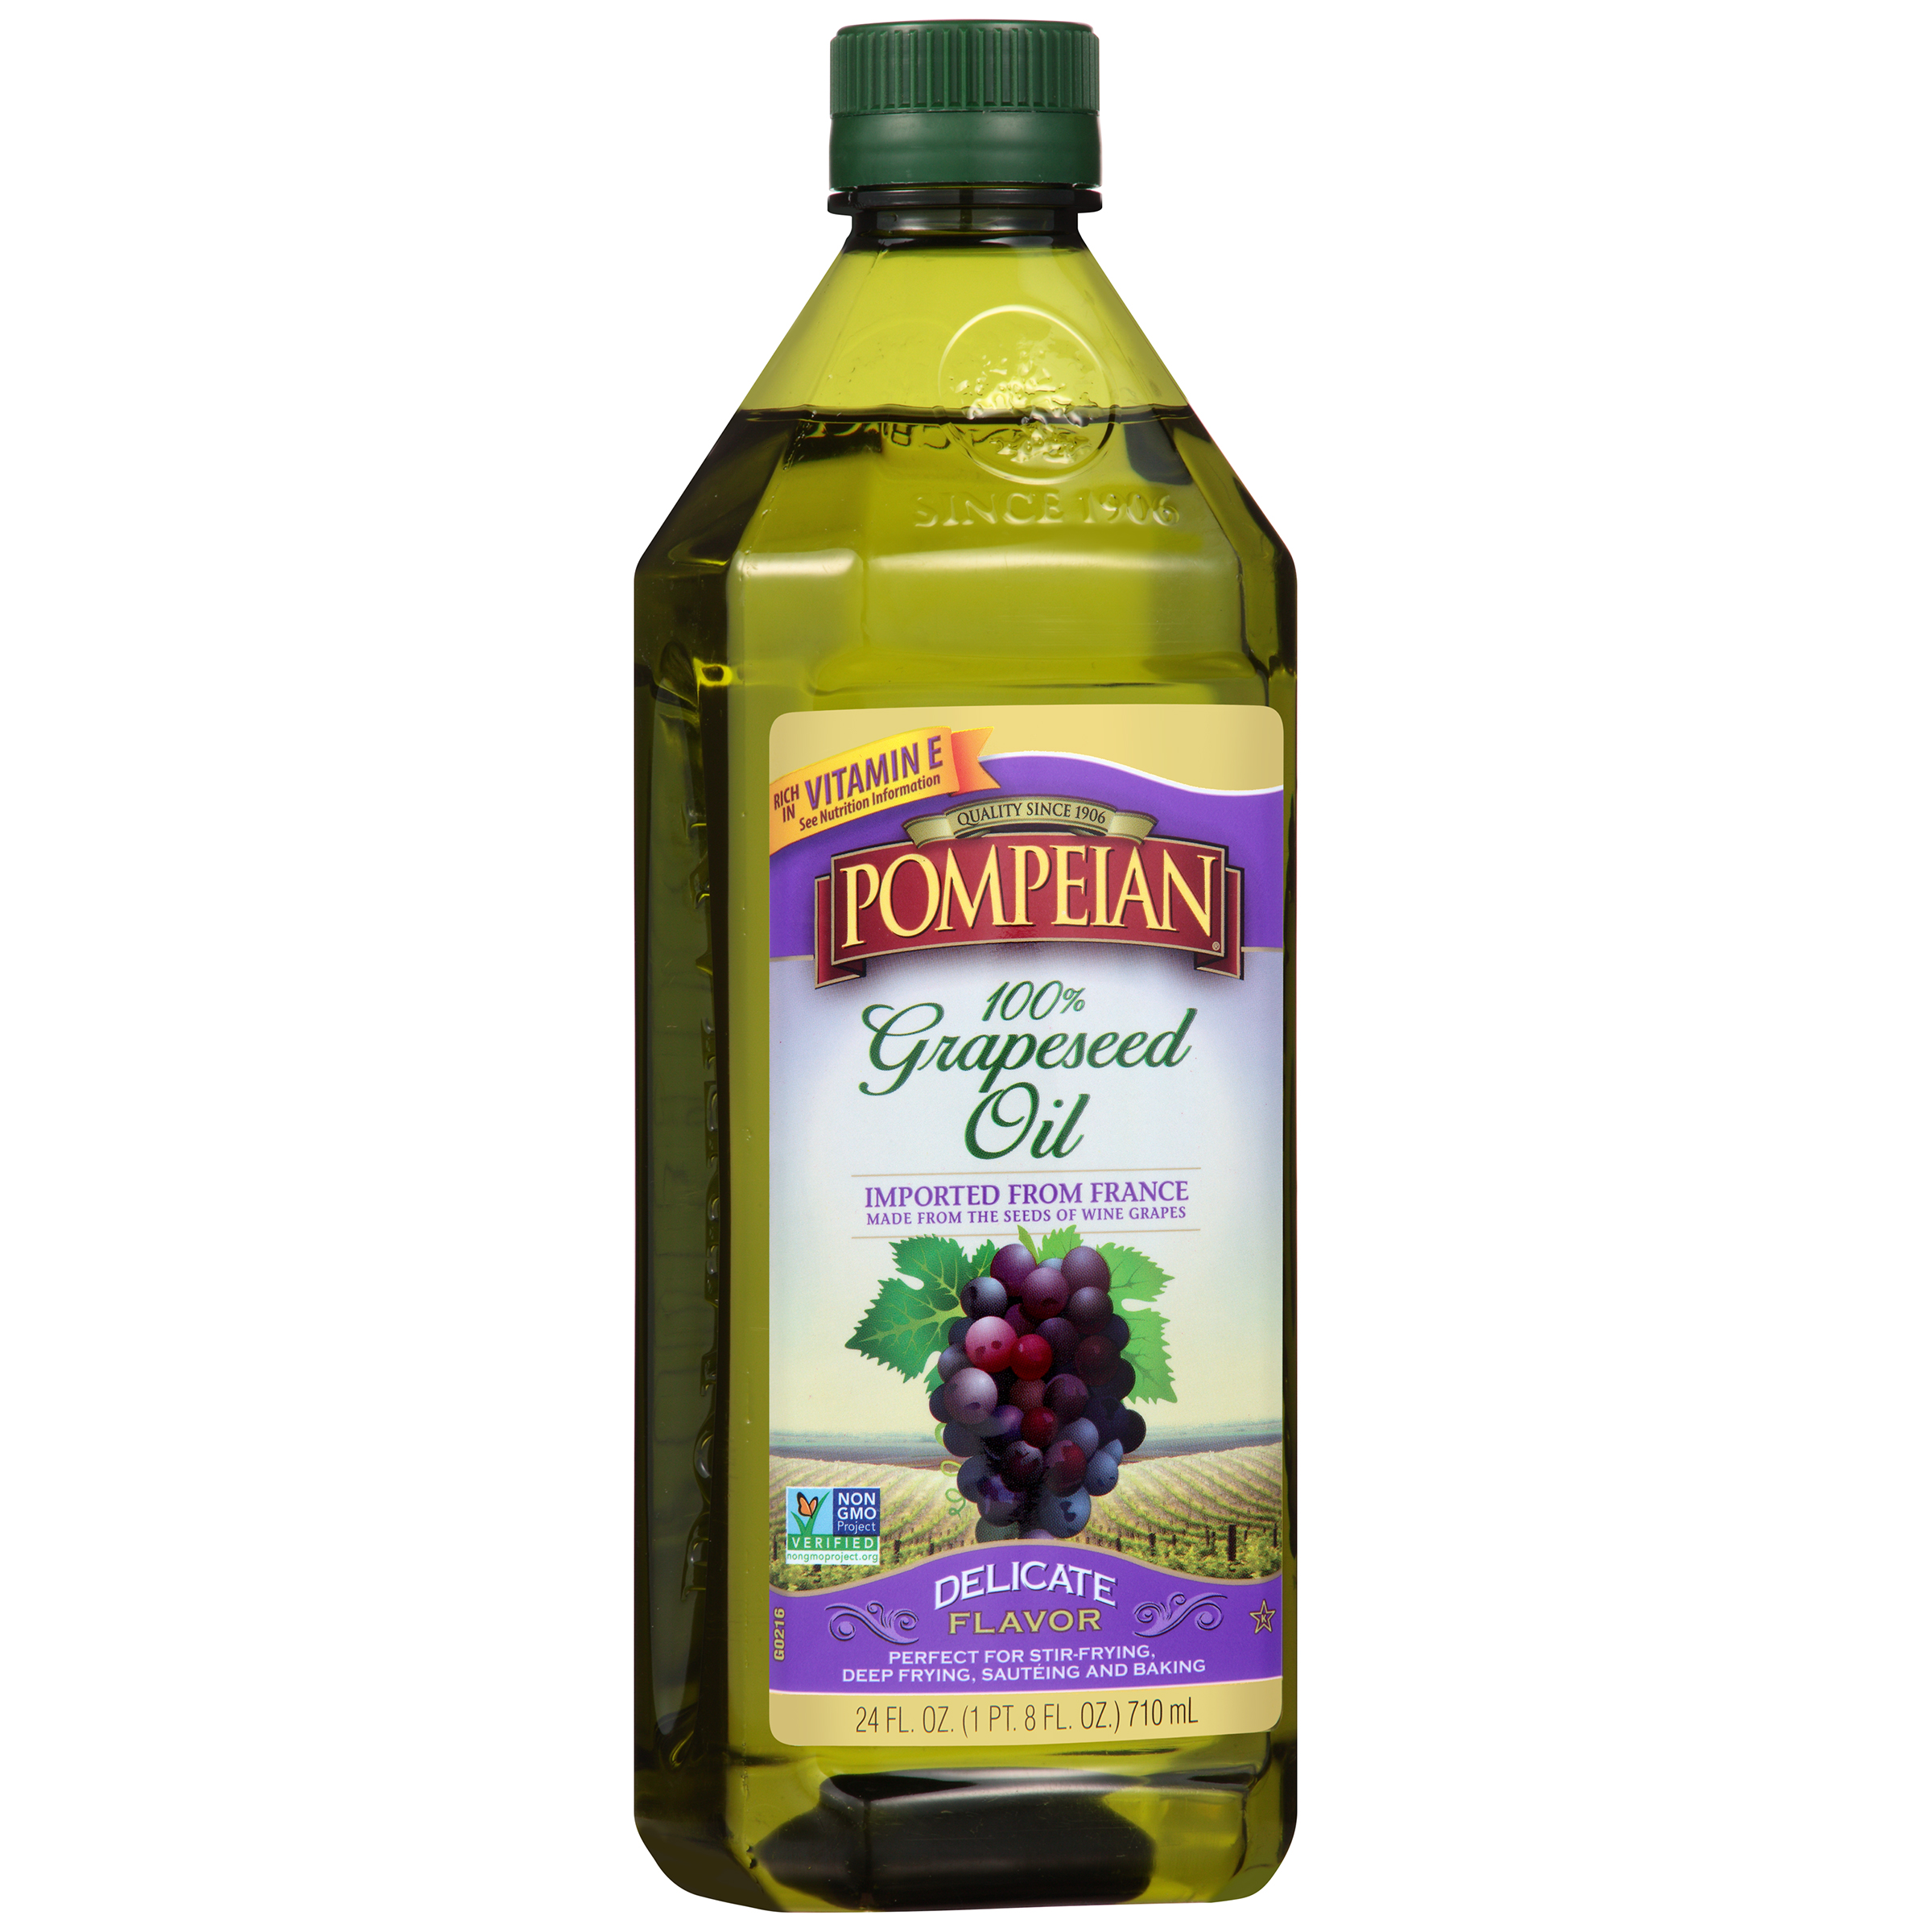 Pompeian�� Imported 100% Grapeseed Oil 24 fl. oz. Bottle